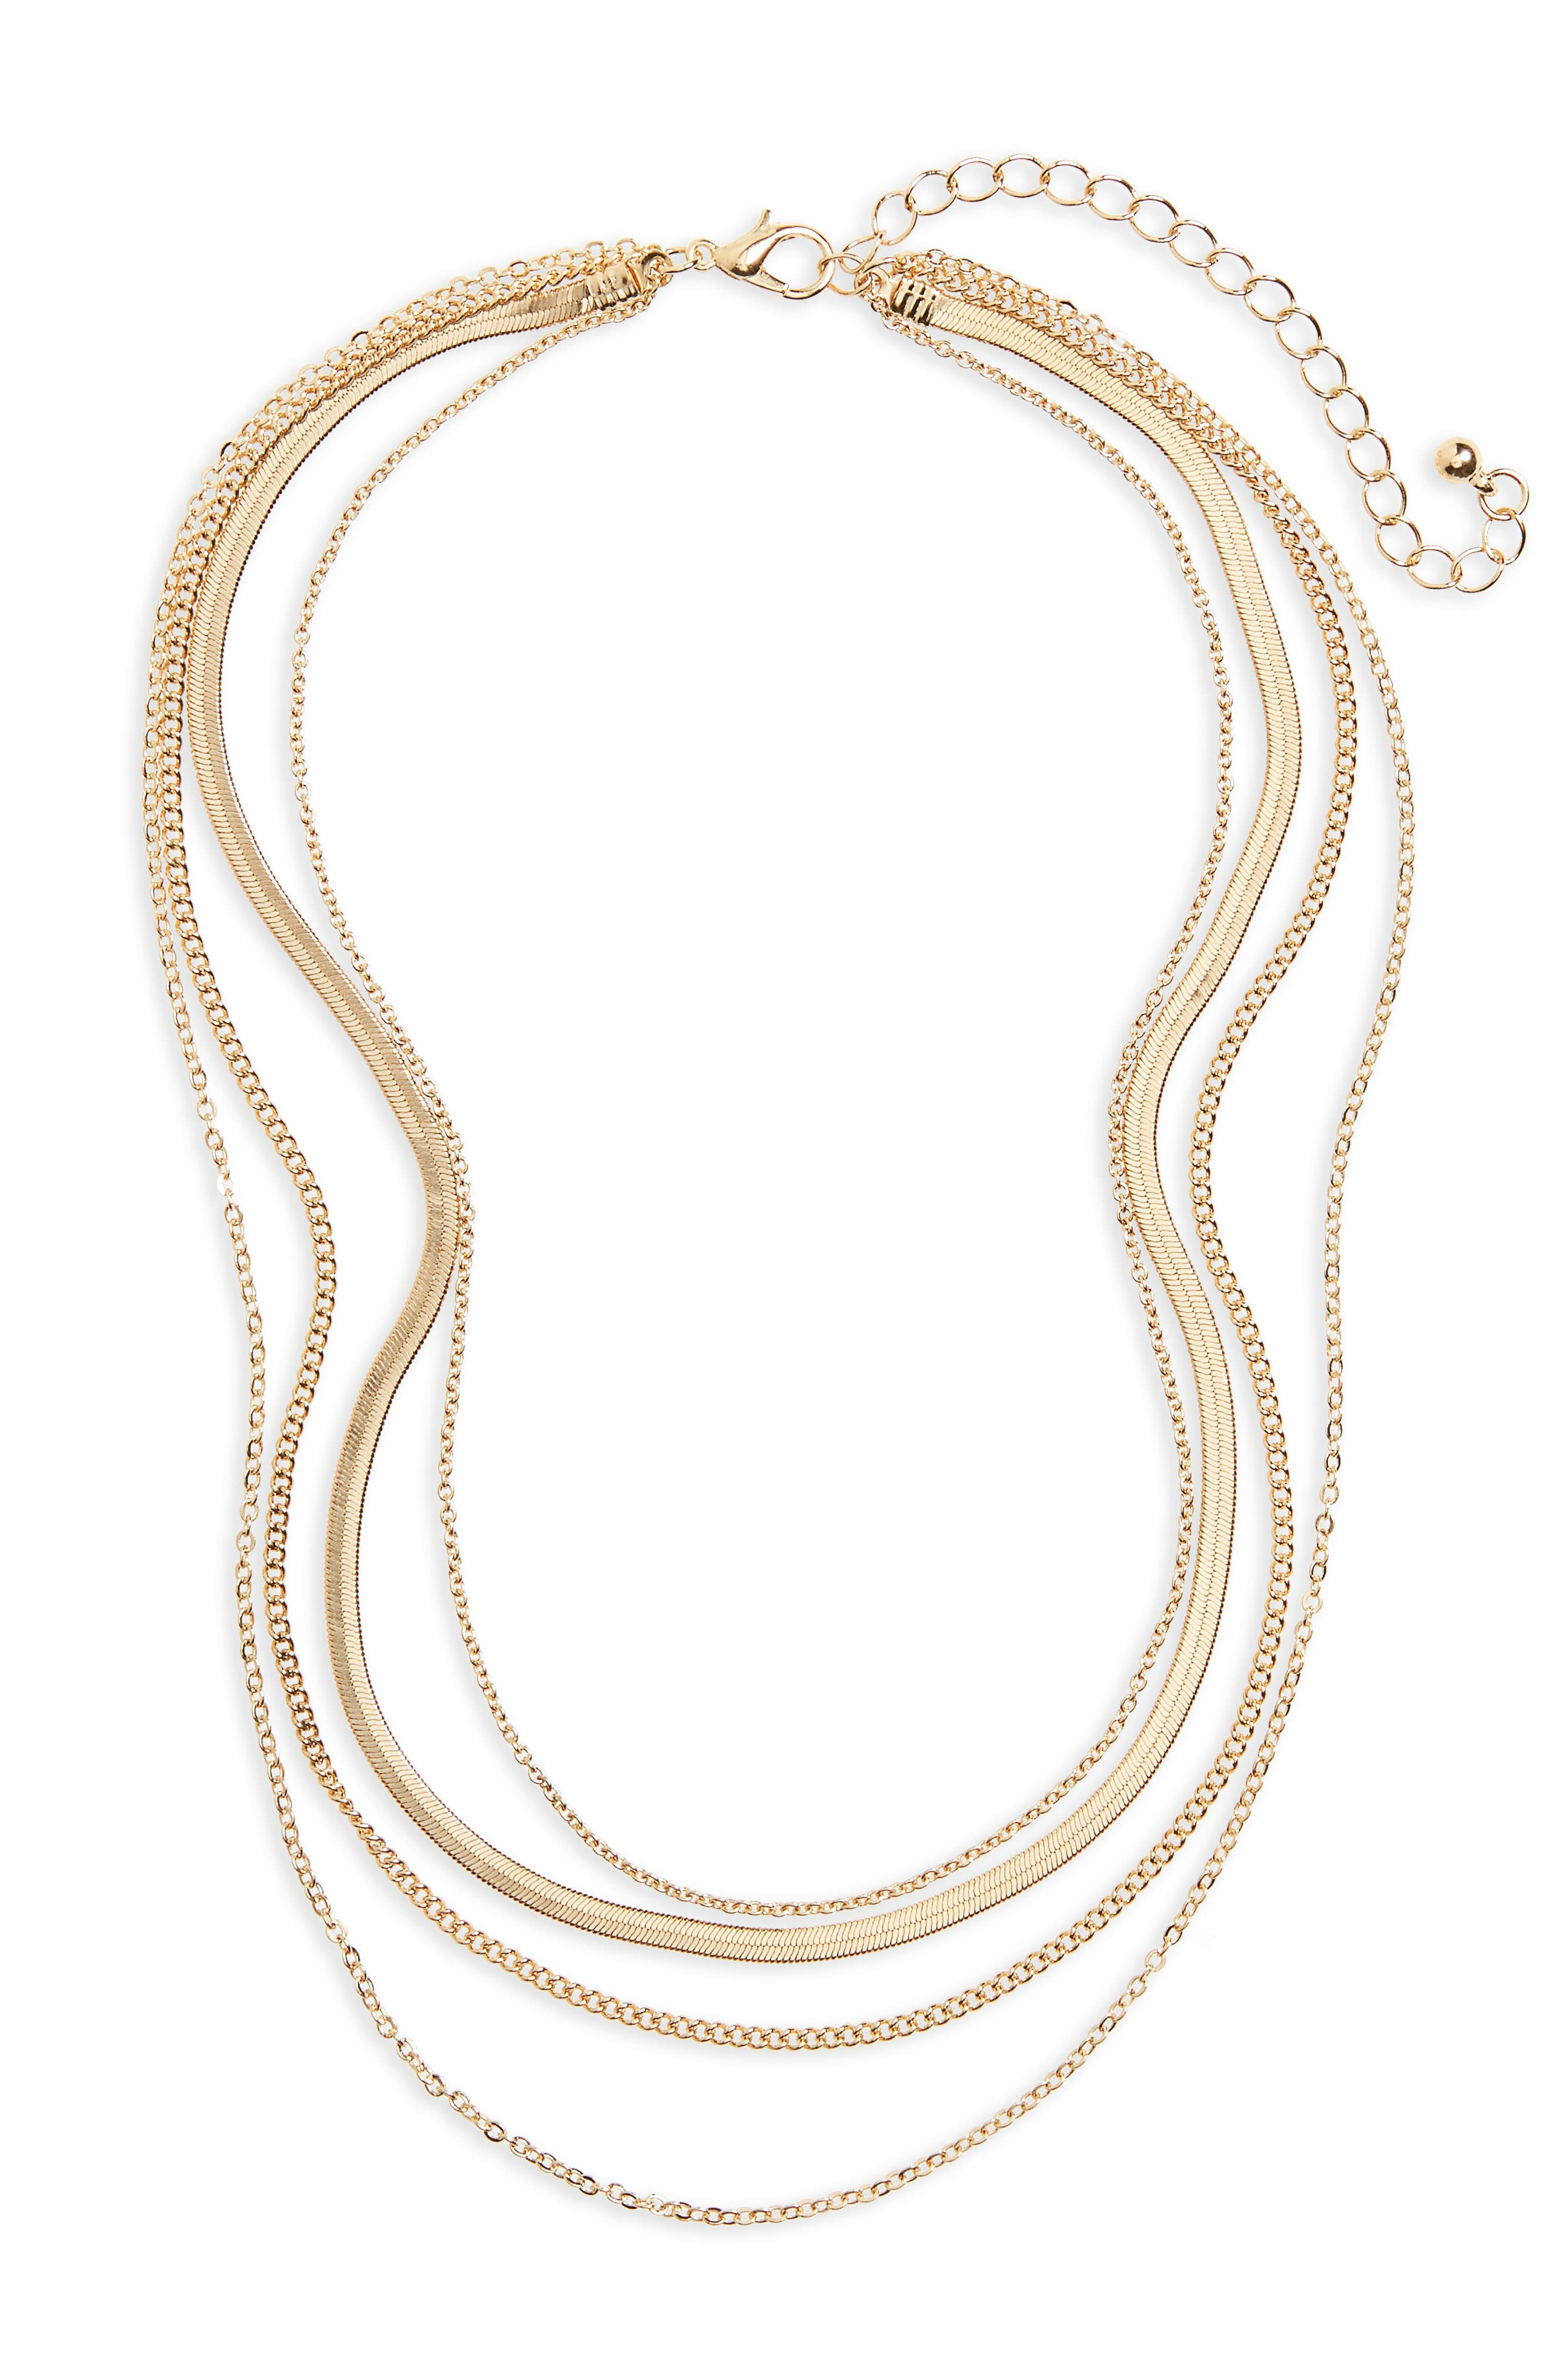 Alternate Image 1 Selected - BP. Layered Chain Necklace